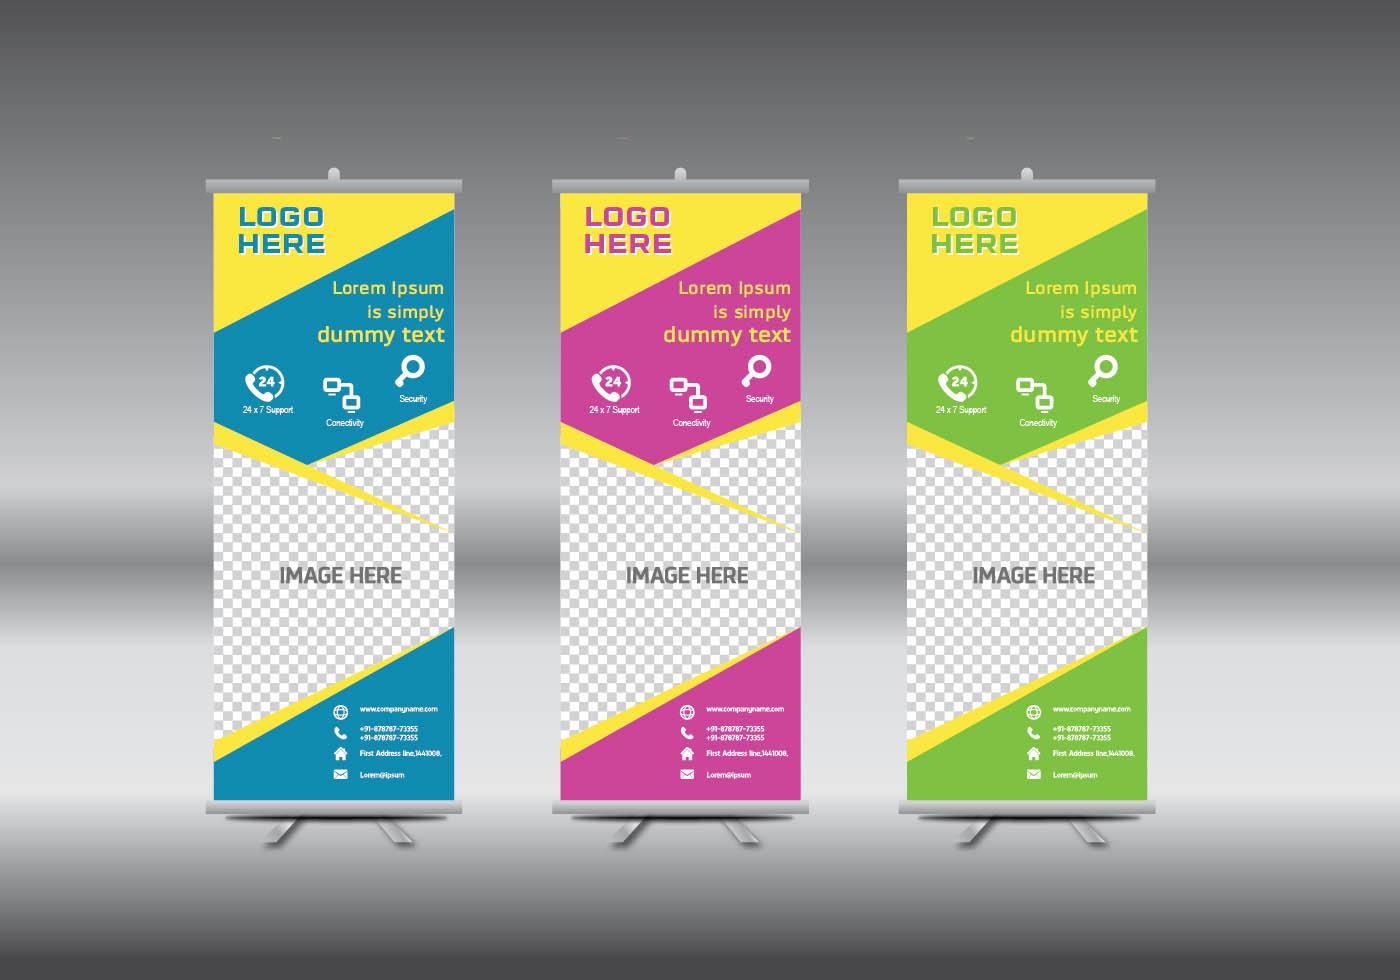 roll up banner template vector illustration download free vector art stock graphics images. Black Bedroom Furniture Sets. Home Design Ideas